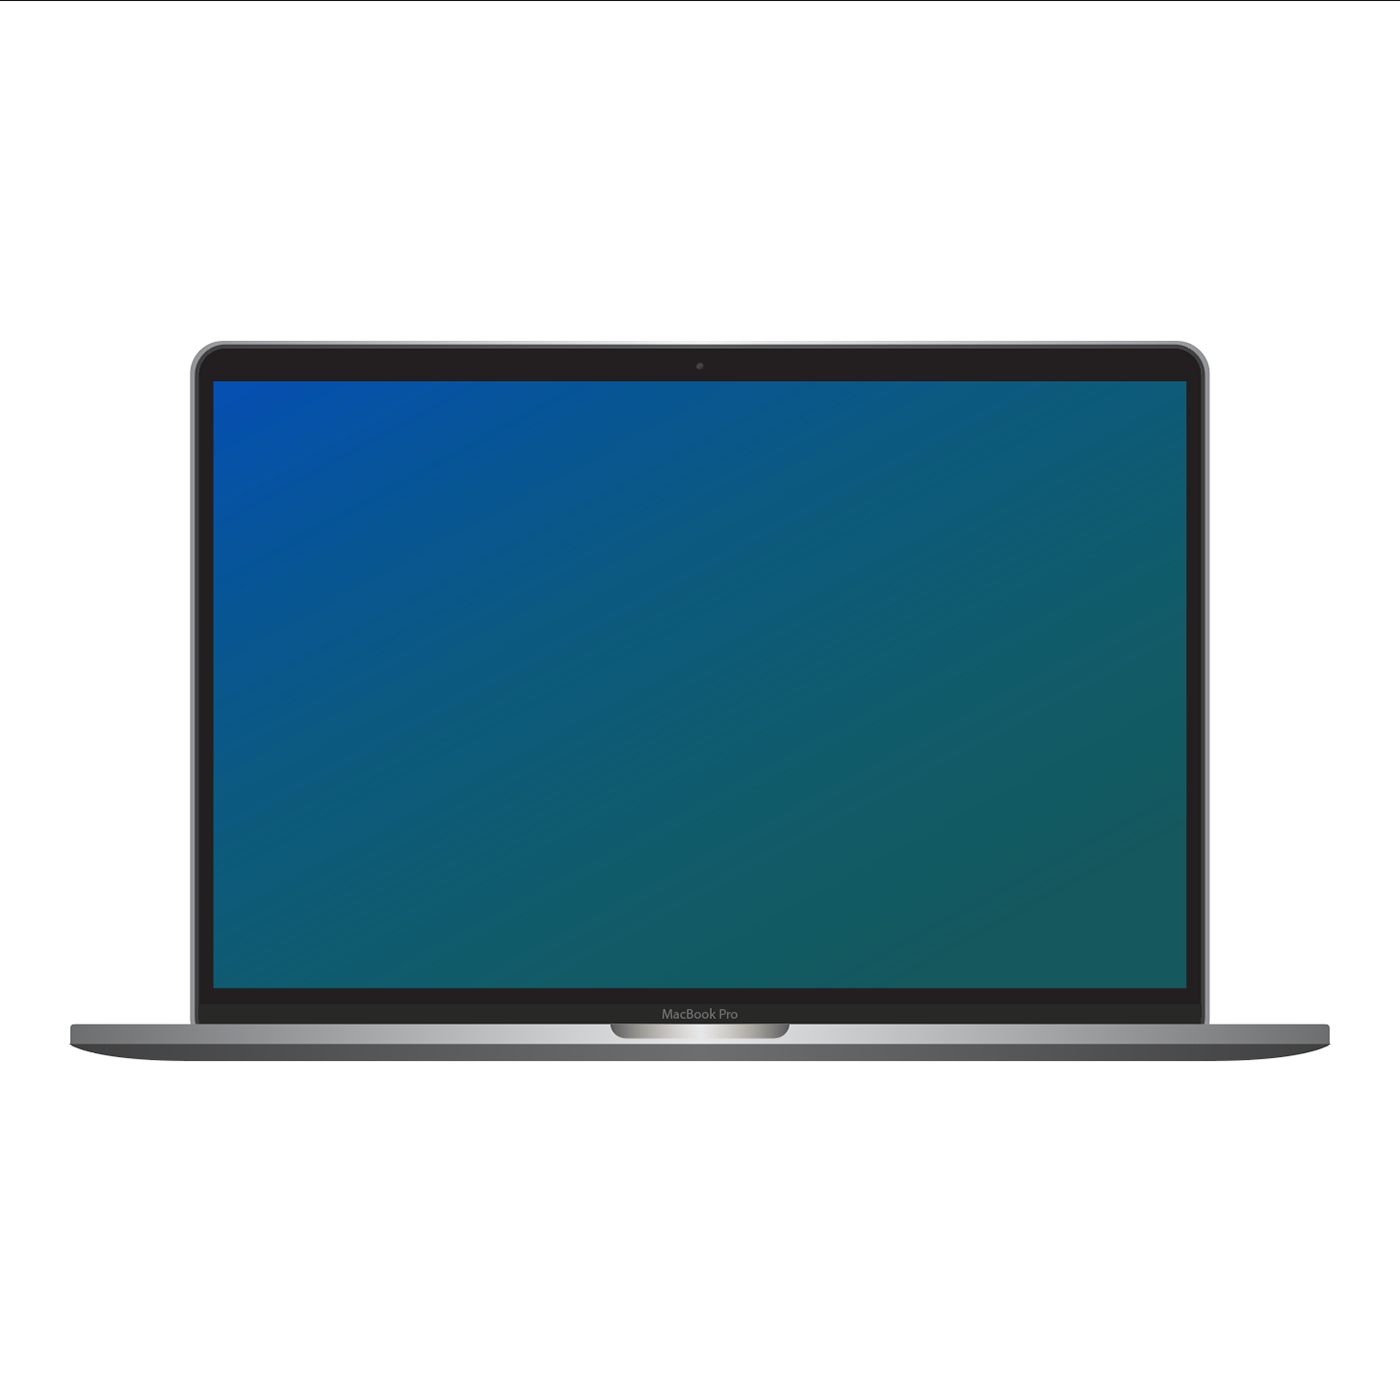 1400x1400 Macbook Pro Free Mockup Ai Download On Behance